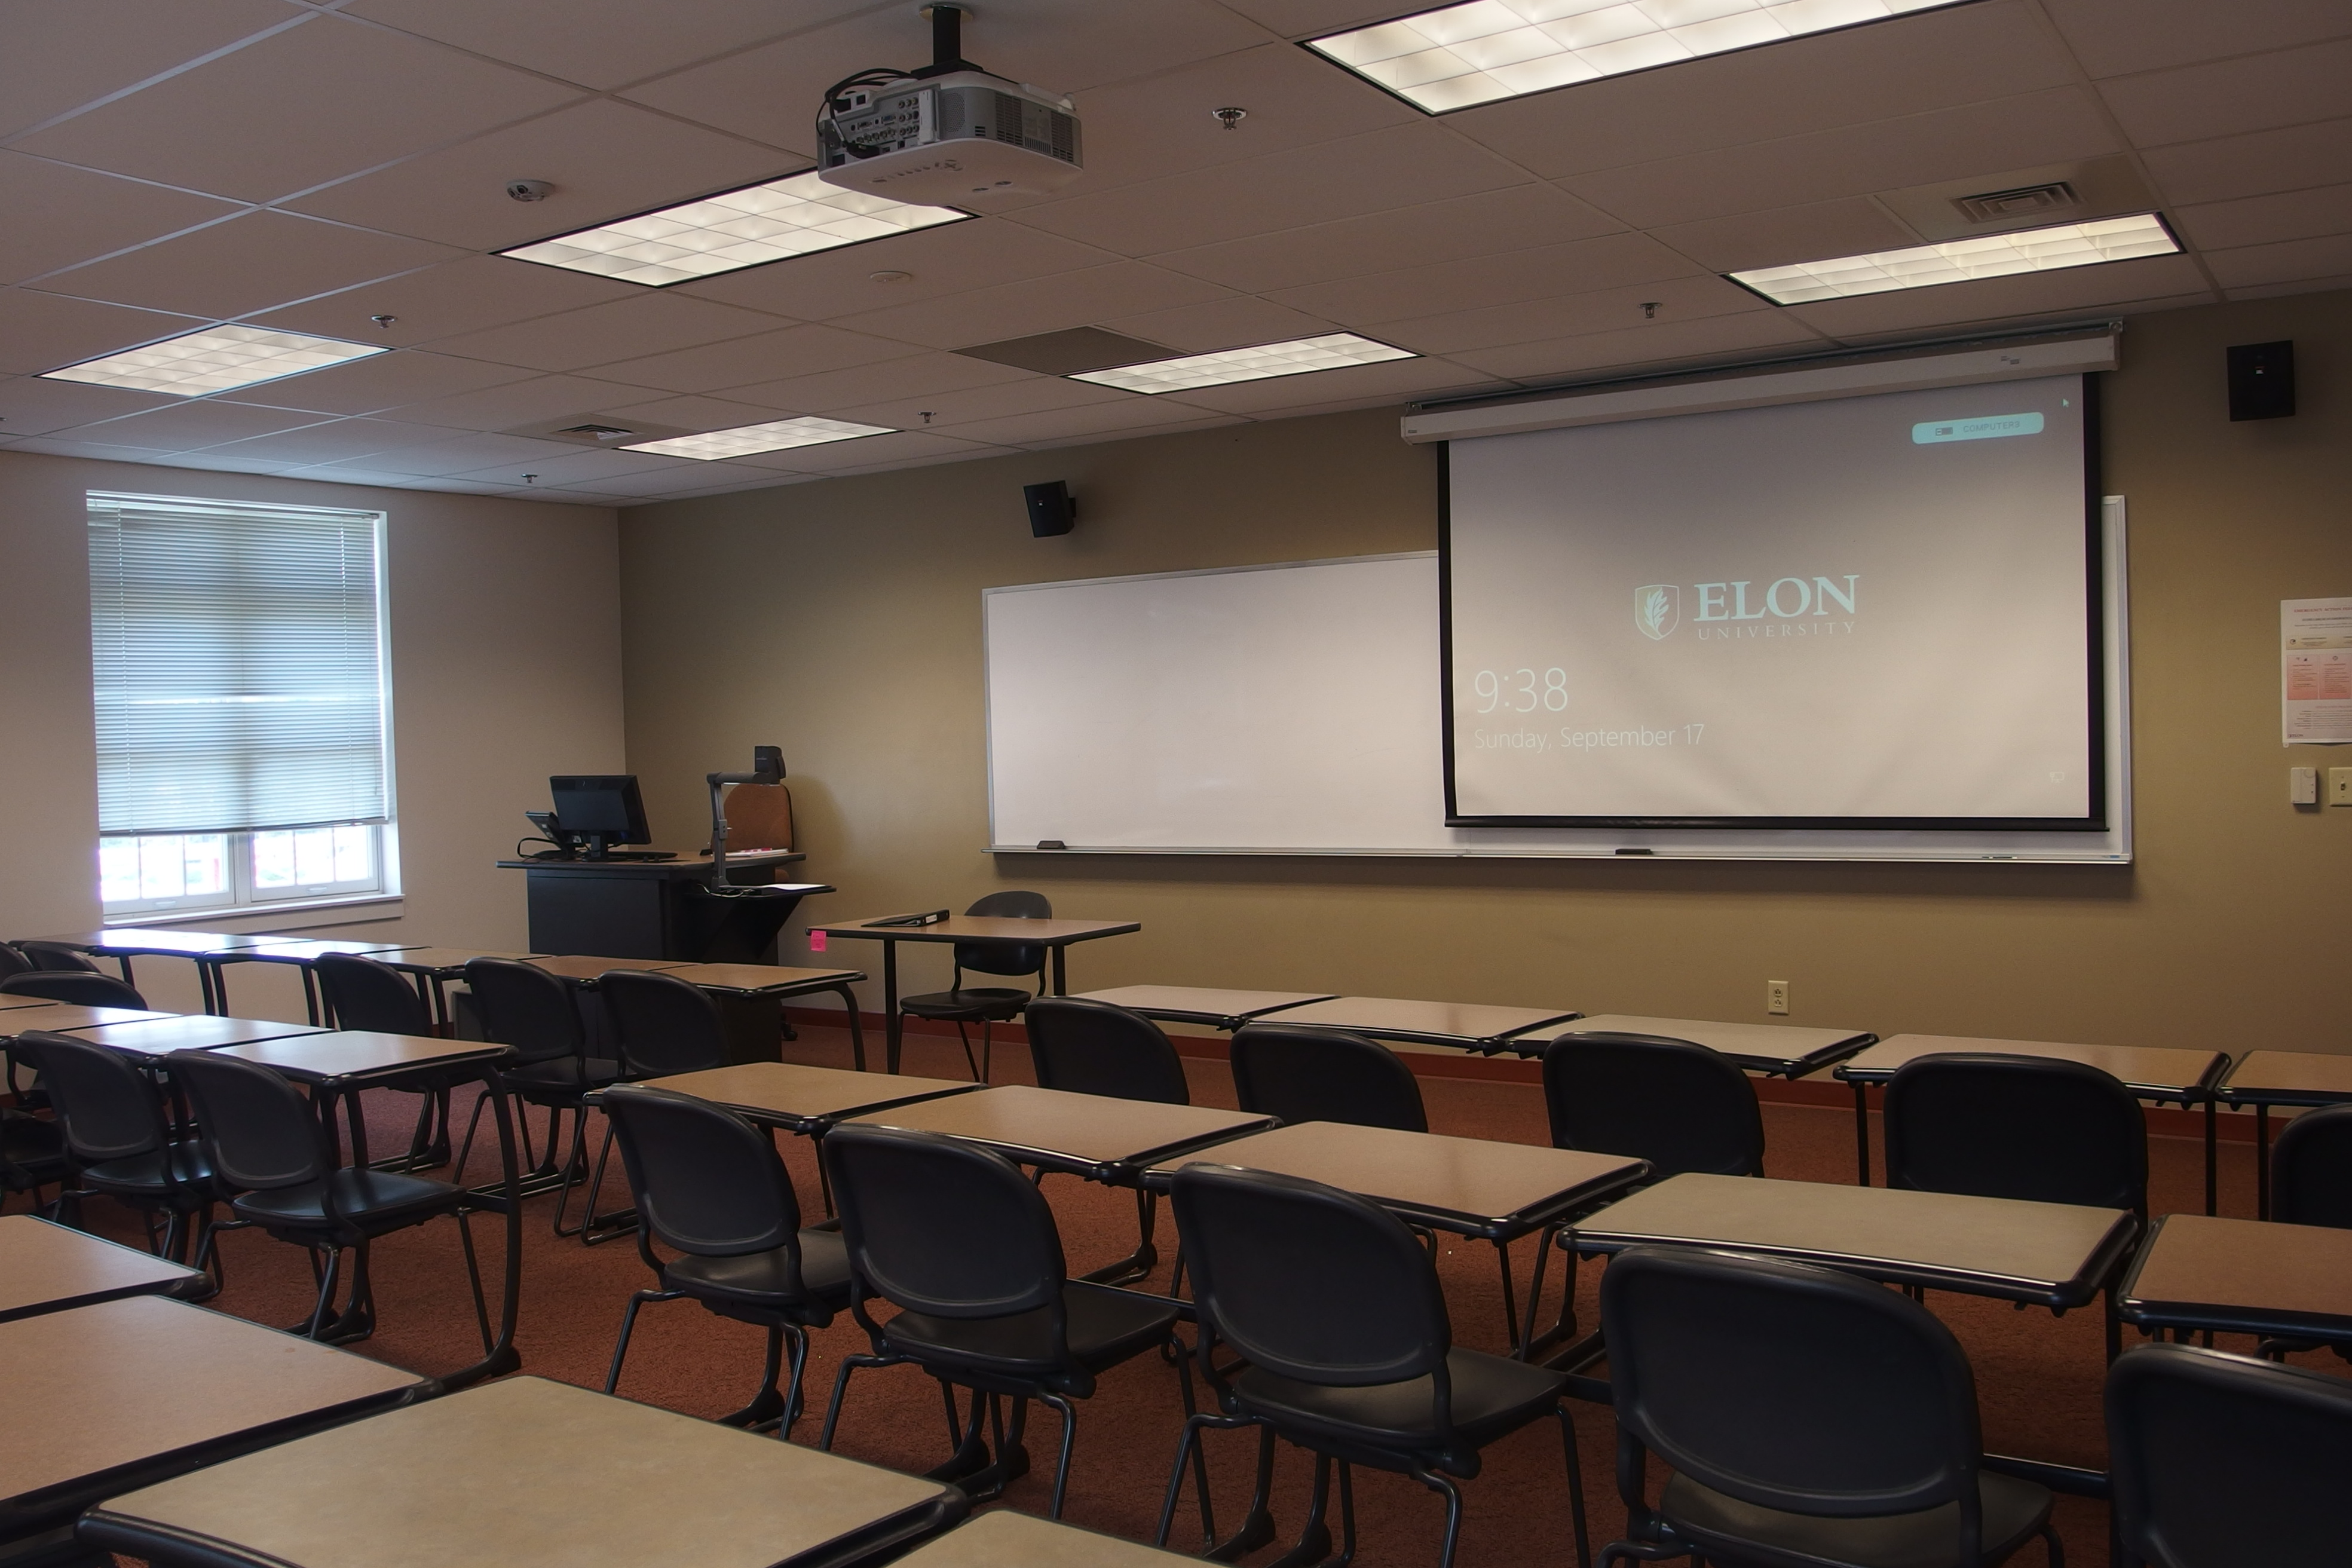 Photo of the classroom taken from the back of the class showing the student desks, lowered projection screen, and instructor's station